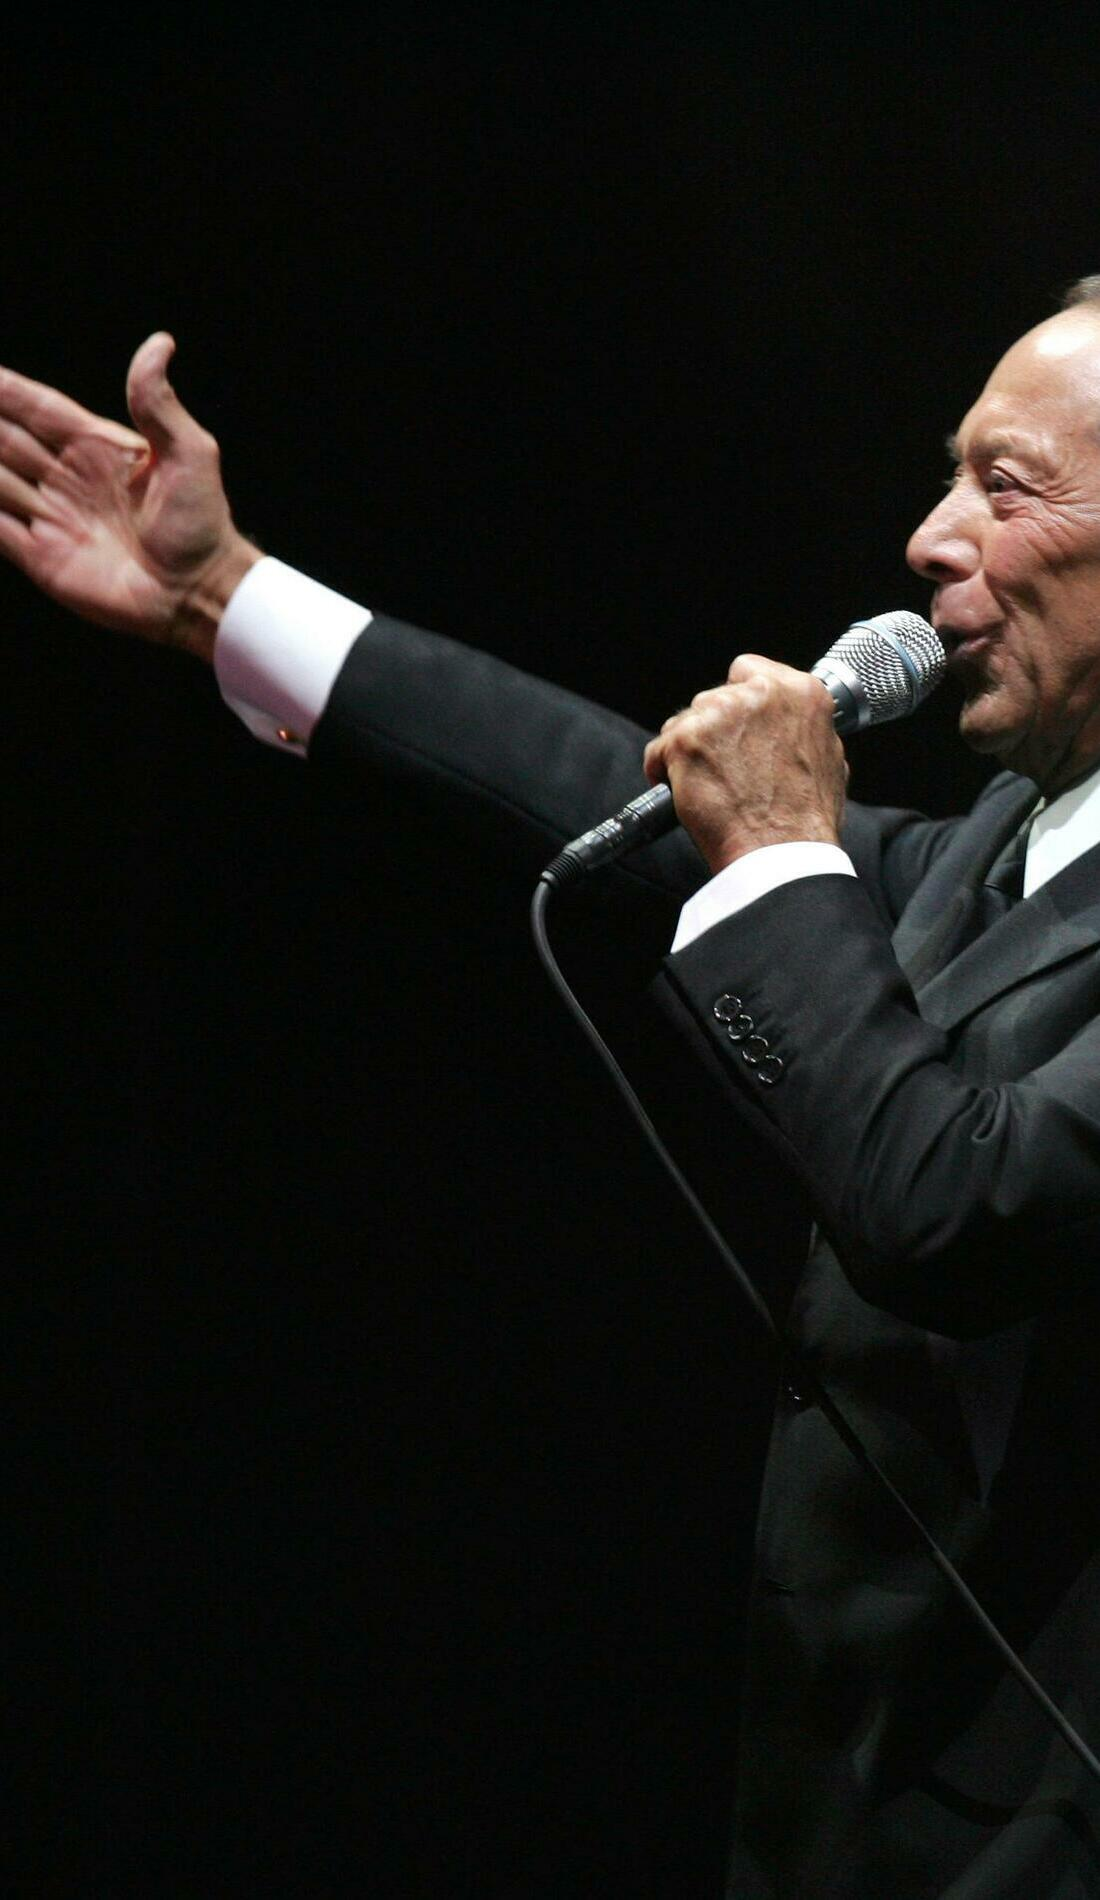 A Paul Anka live event